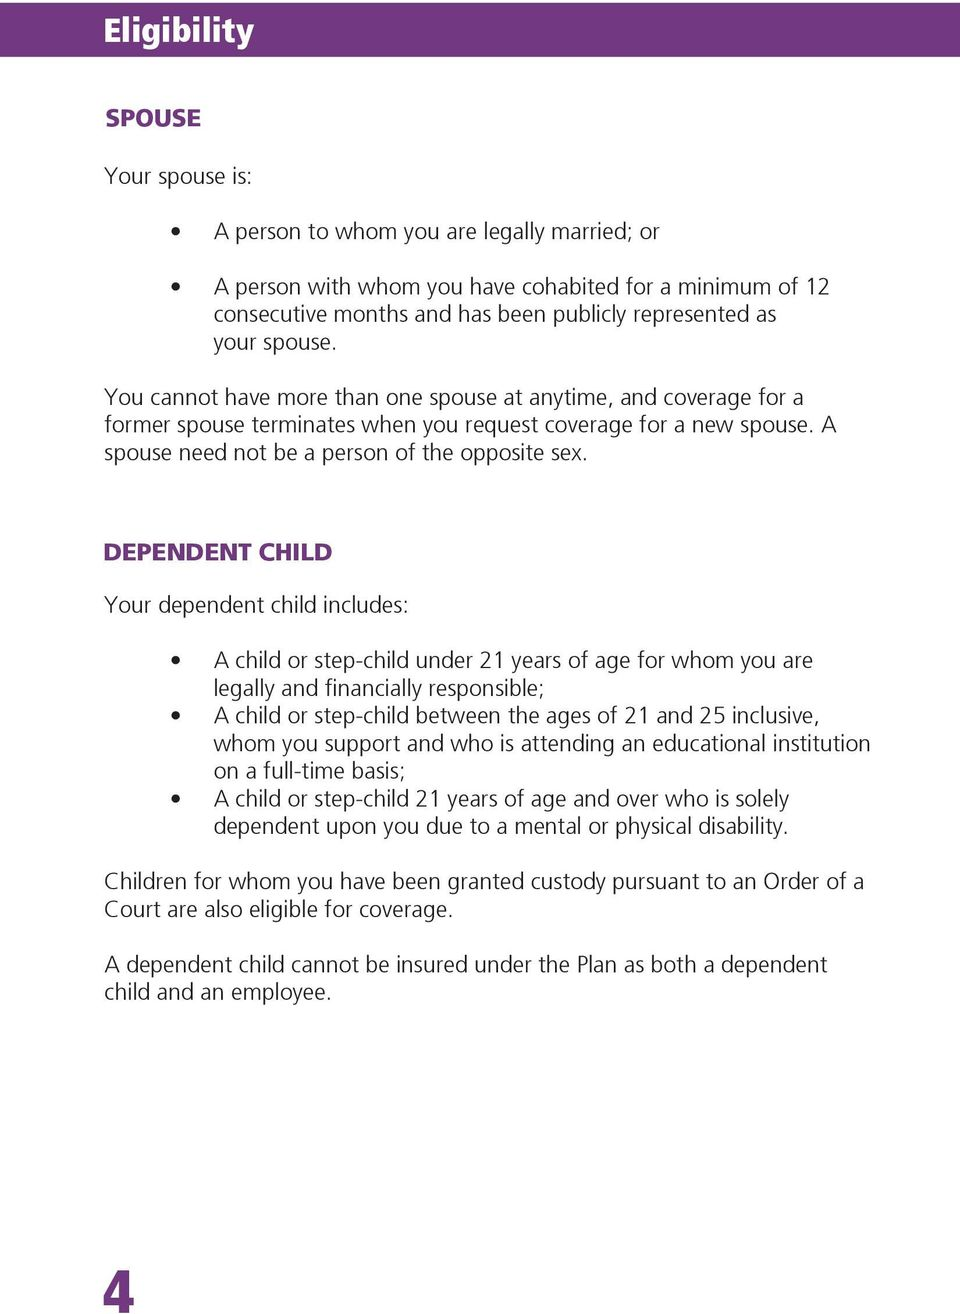 DEPENDENT CHILD Your dependent child includes: A child or step-child under 21 years of age for whom you are legally and financially responsible; A child or step-child between the ages of 21 and 25